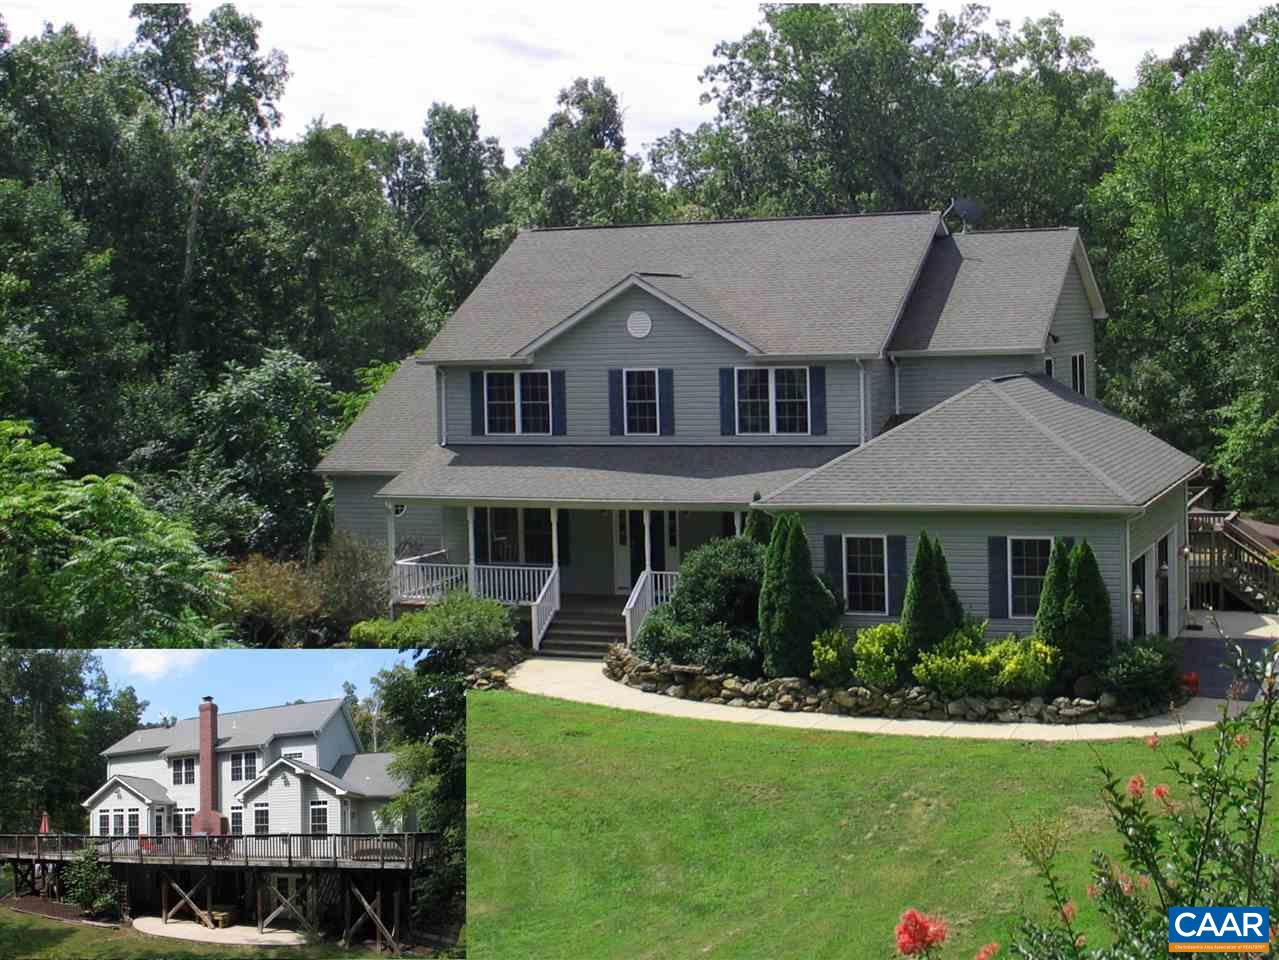 home for sale , MLS #566236, 20523 Old Mill Rd